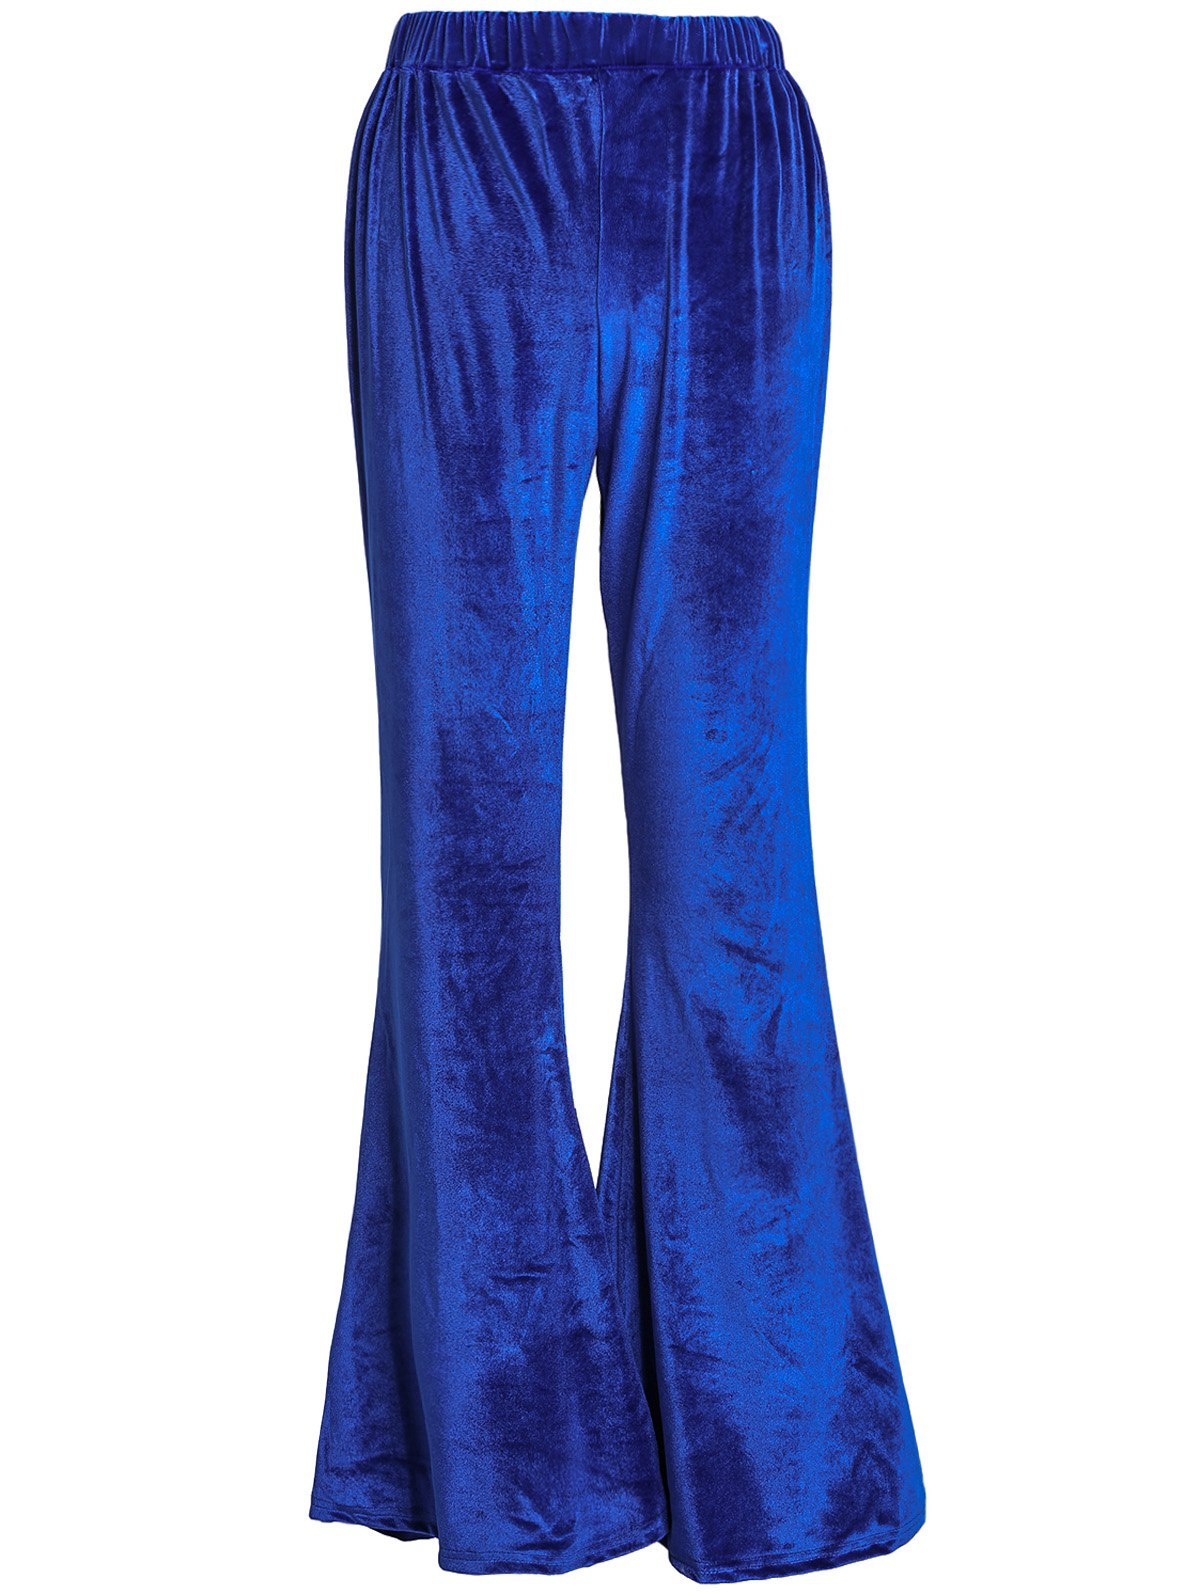 Stylish High-Waisted Boot Cut Solid Color Women's Velvet Pants - BLUE XL